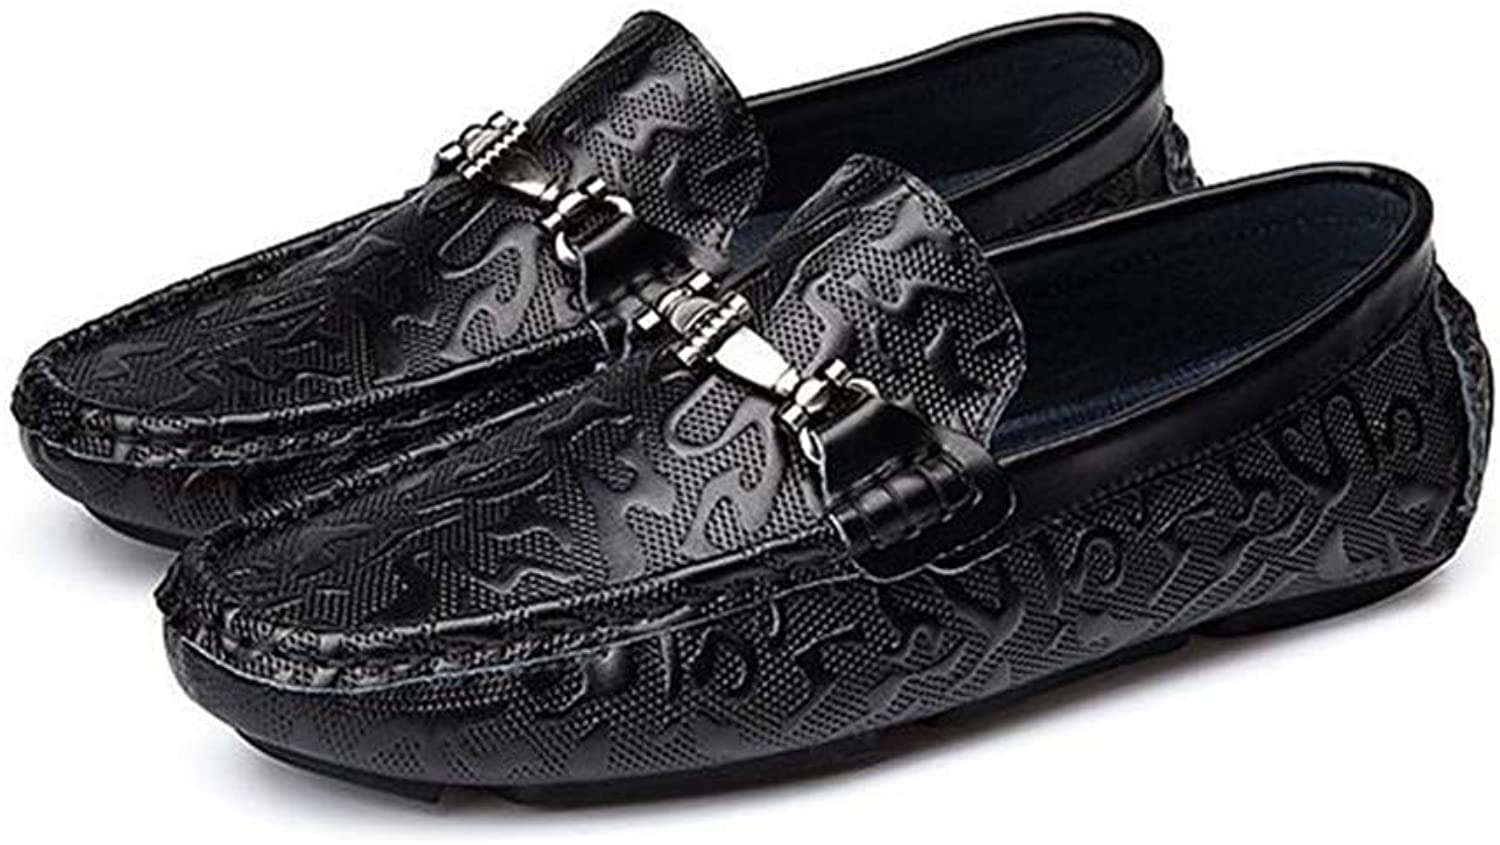 Y-H Men's Casual shoes,Spring Fall Light Soles Loafers & Slip-Ons, Soft Sole Comfort Driving shoes Trekking,black,42